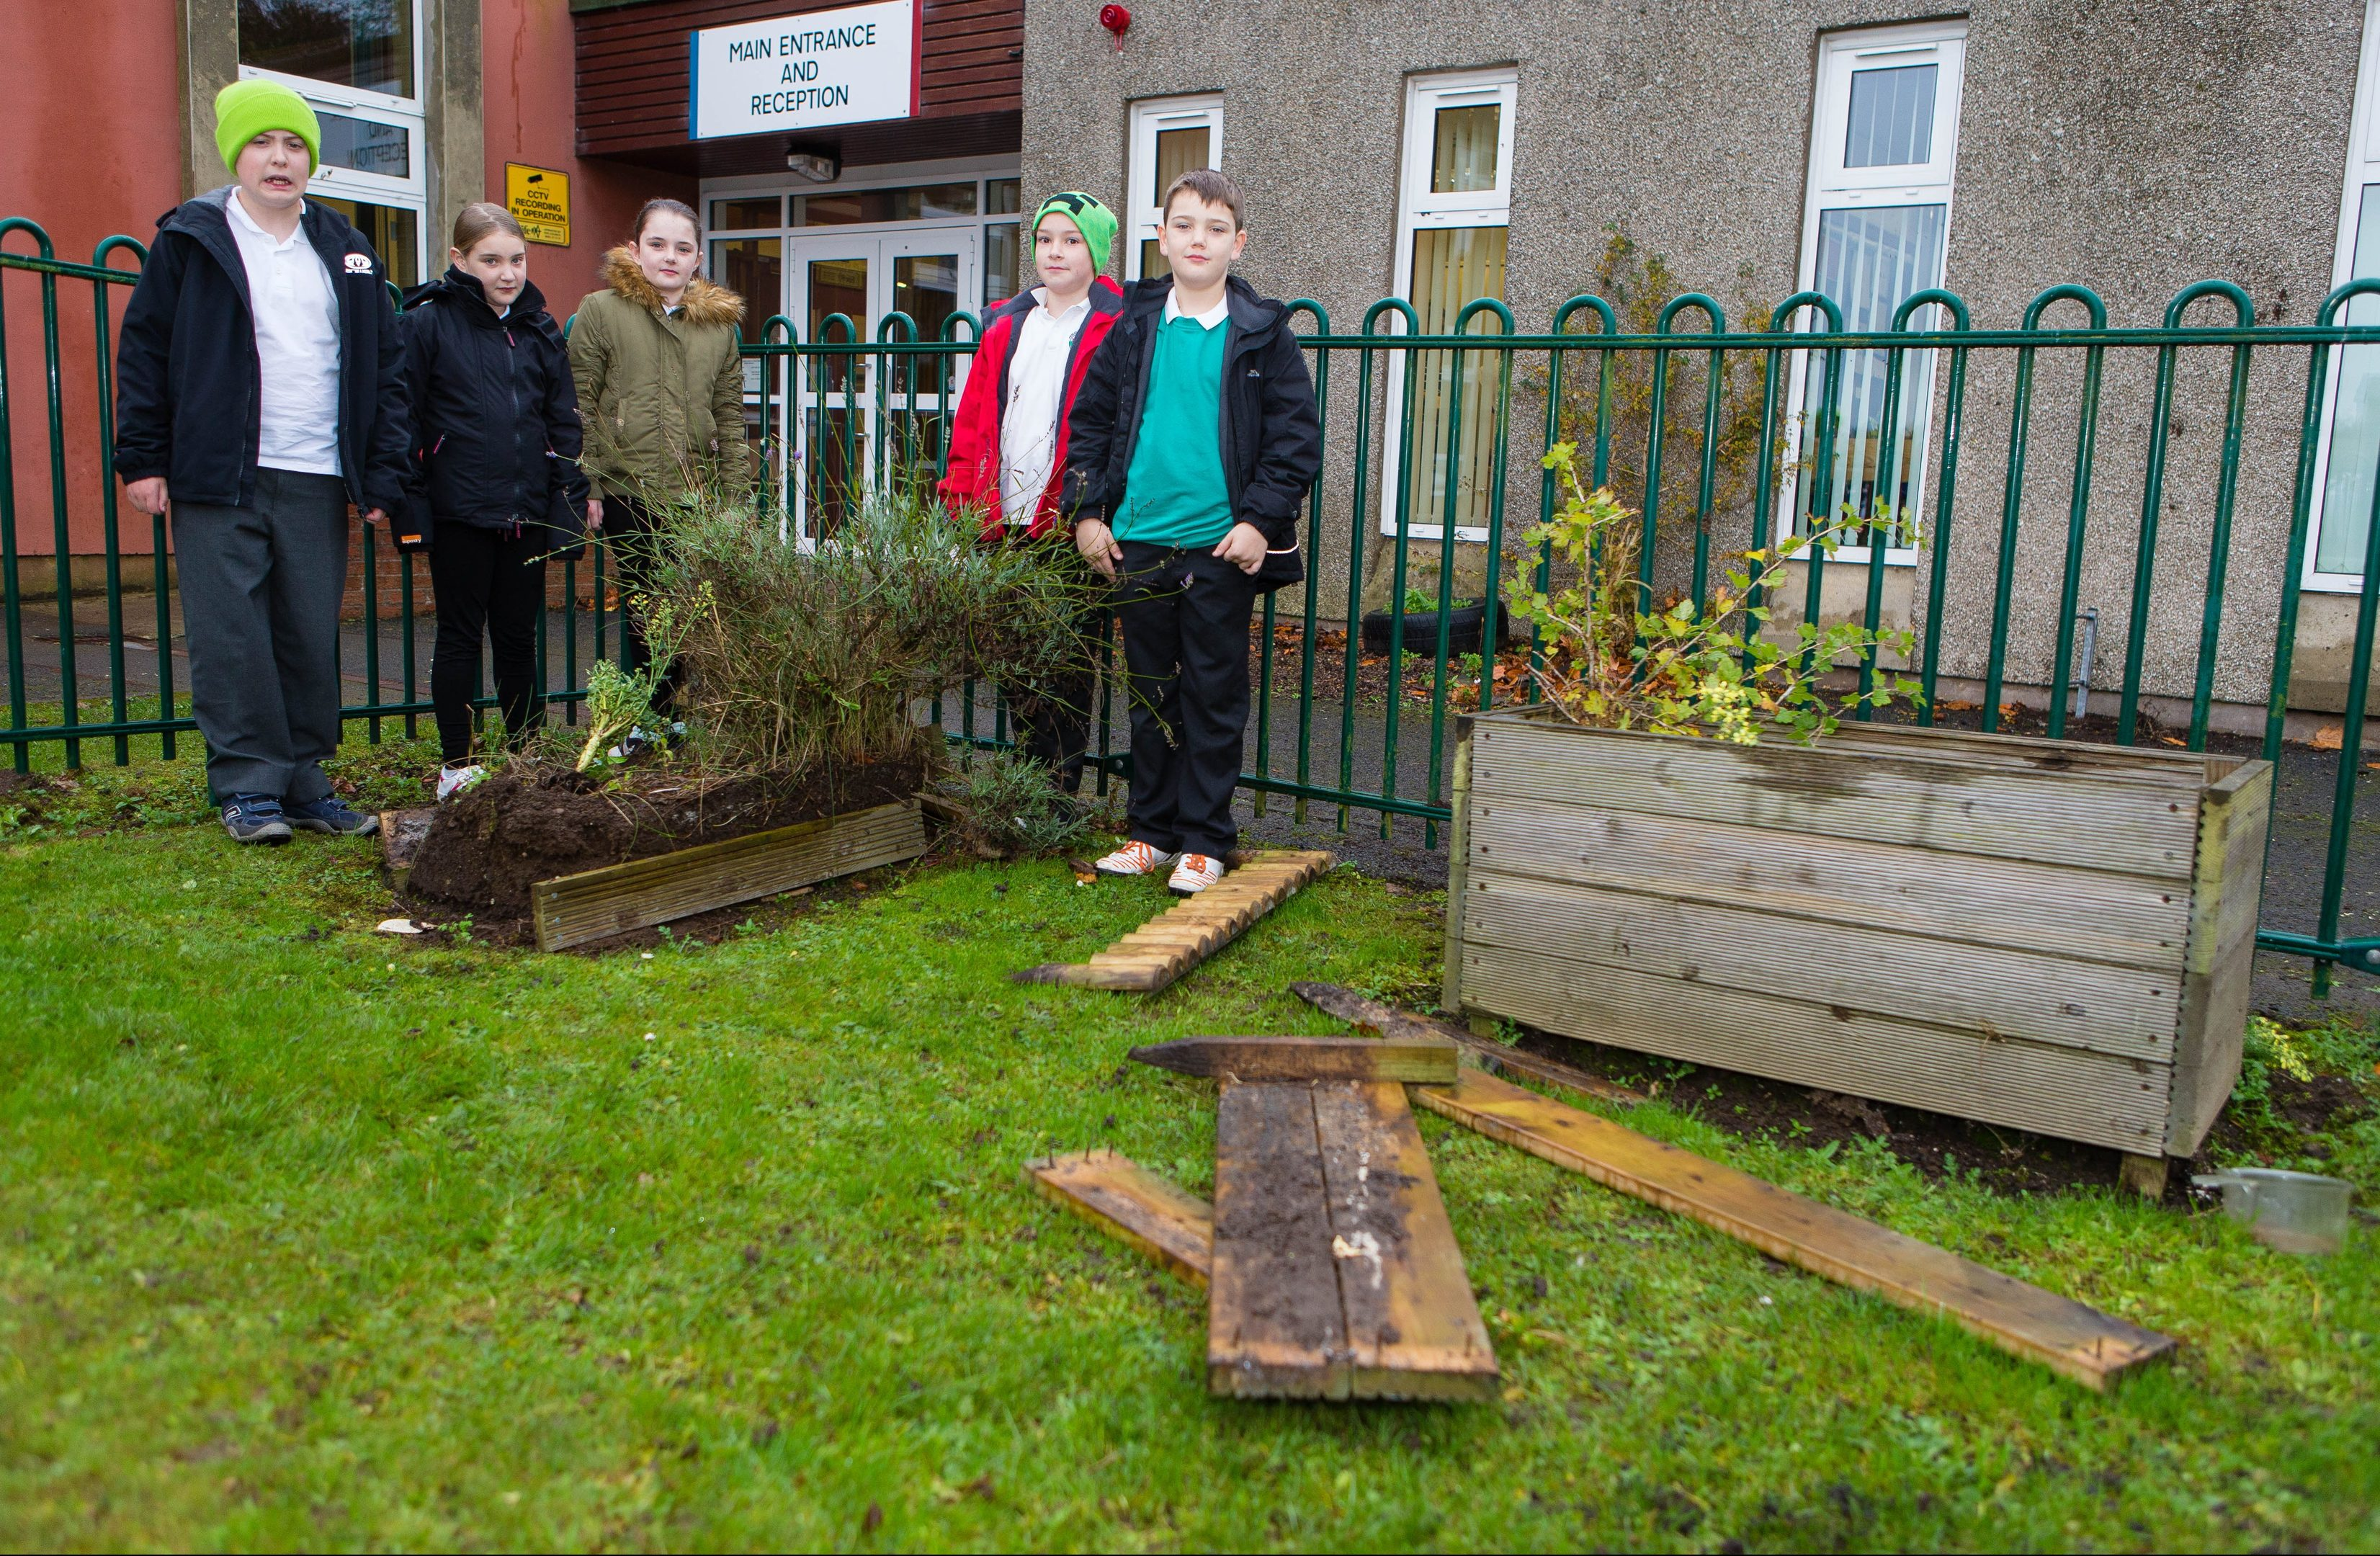 Pitcoudie Primary School in Glenrothes was subject to overnight vandalism in November. .Pictured are Frazer Dewar (9), Connor Cross (9), Kai Kerr (9), Lilly McIrvine (9) and Lauren McGrath (9)  in the gardens where the vandalism has destroyed all their hard work.